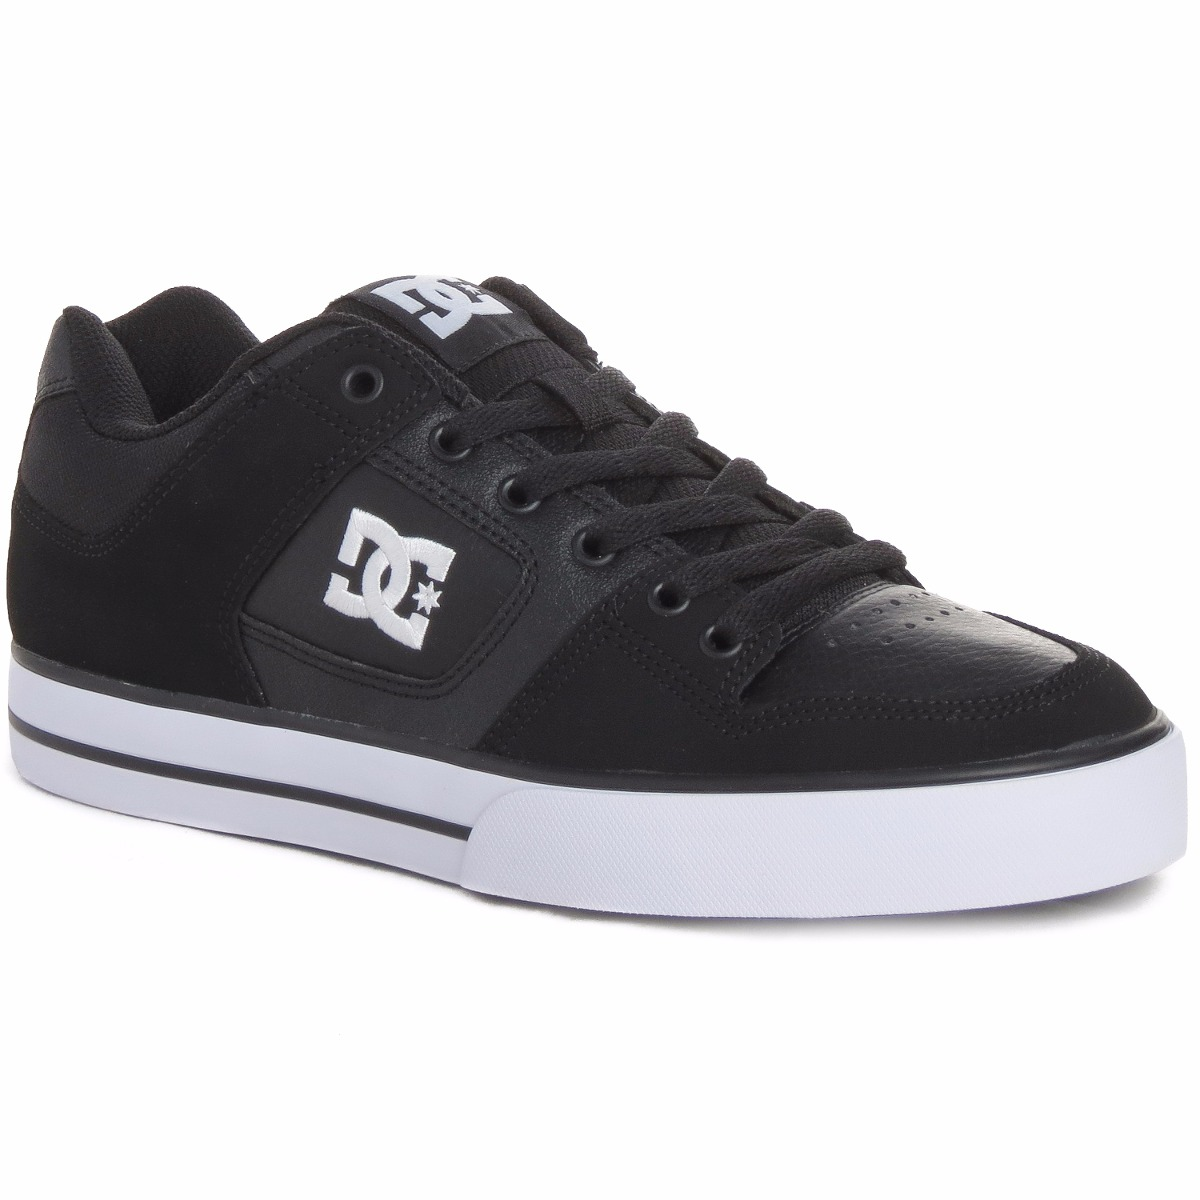 Zapatillas - DC Shoes Zapatillas Dc Modelo Pure Skate Urbanas